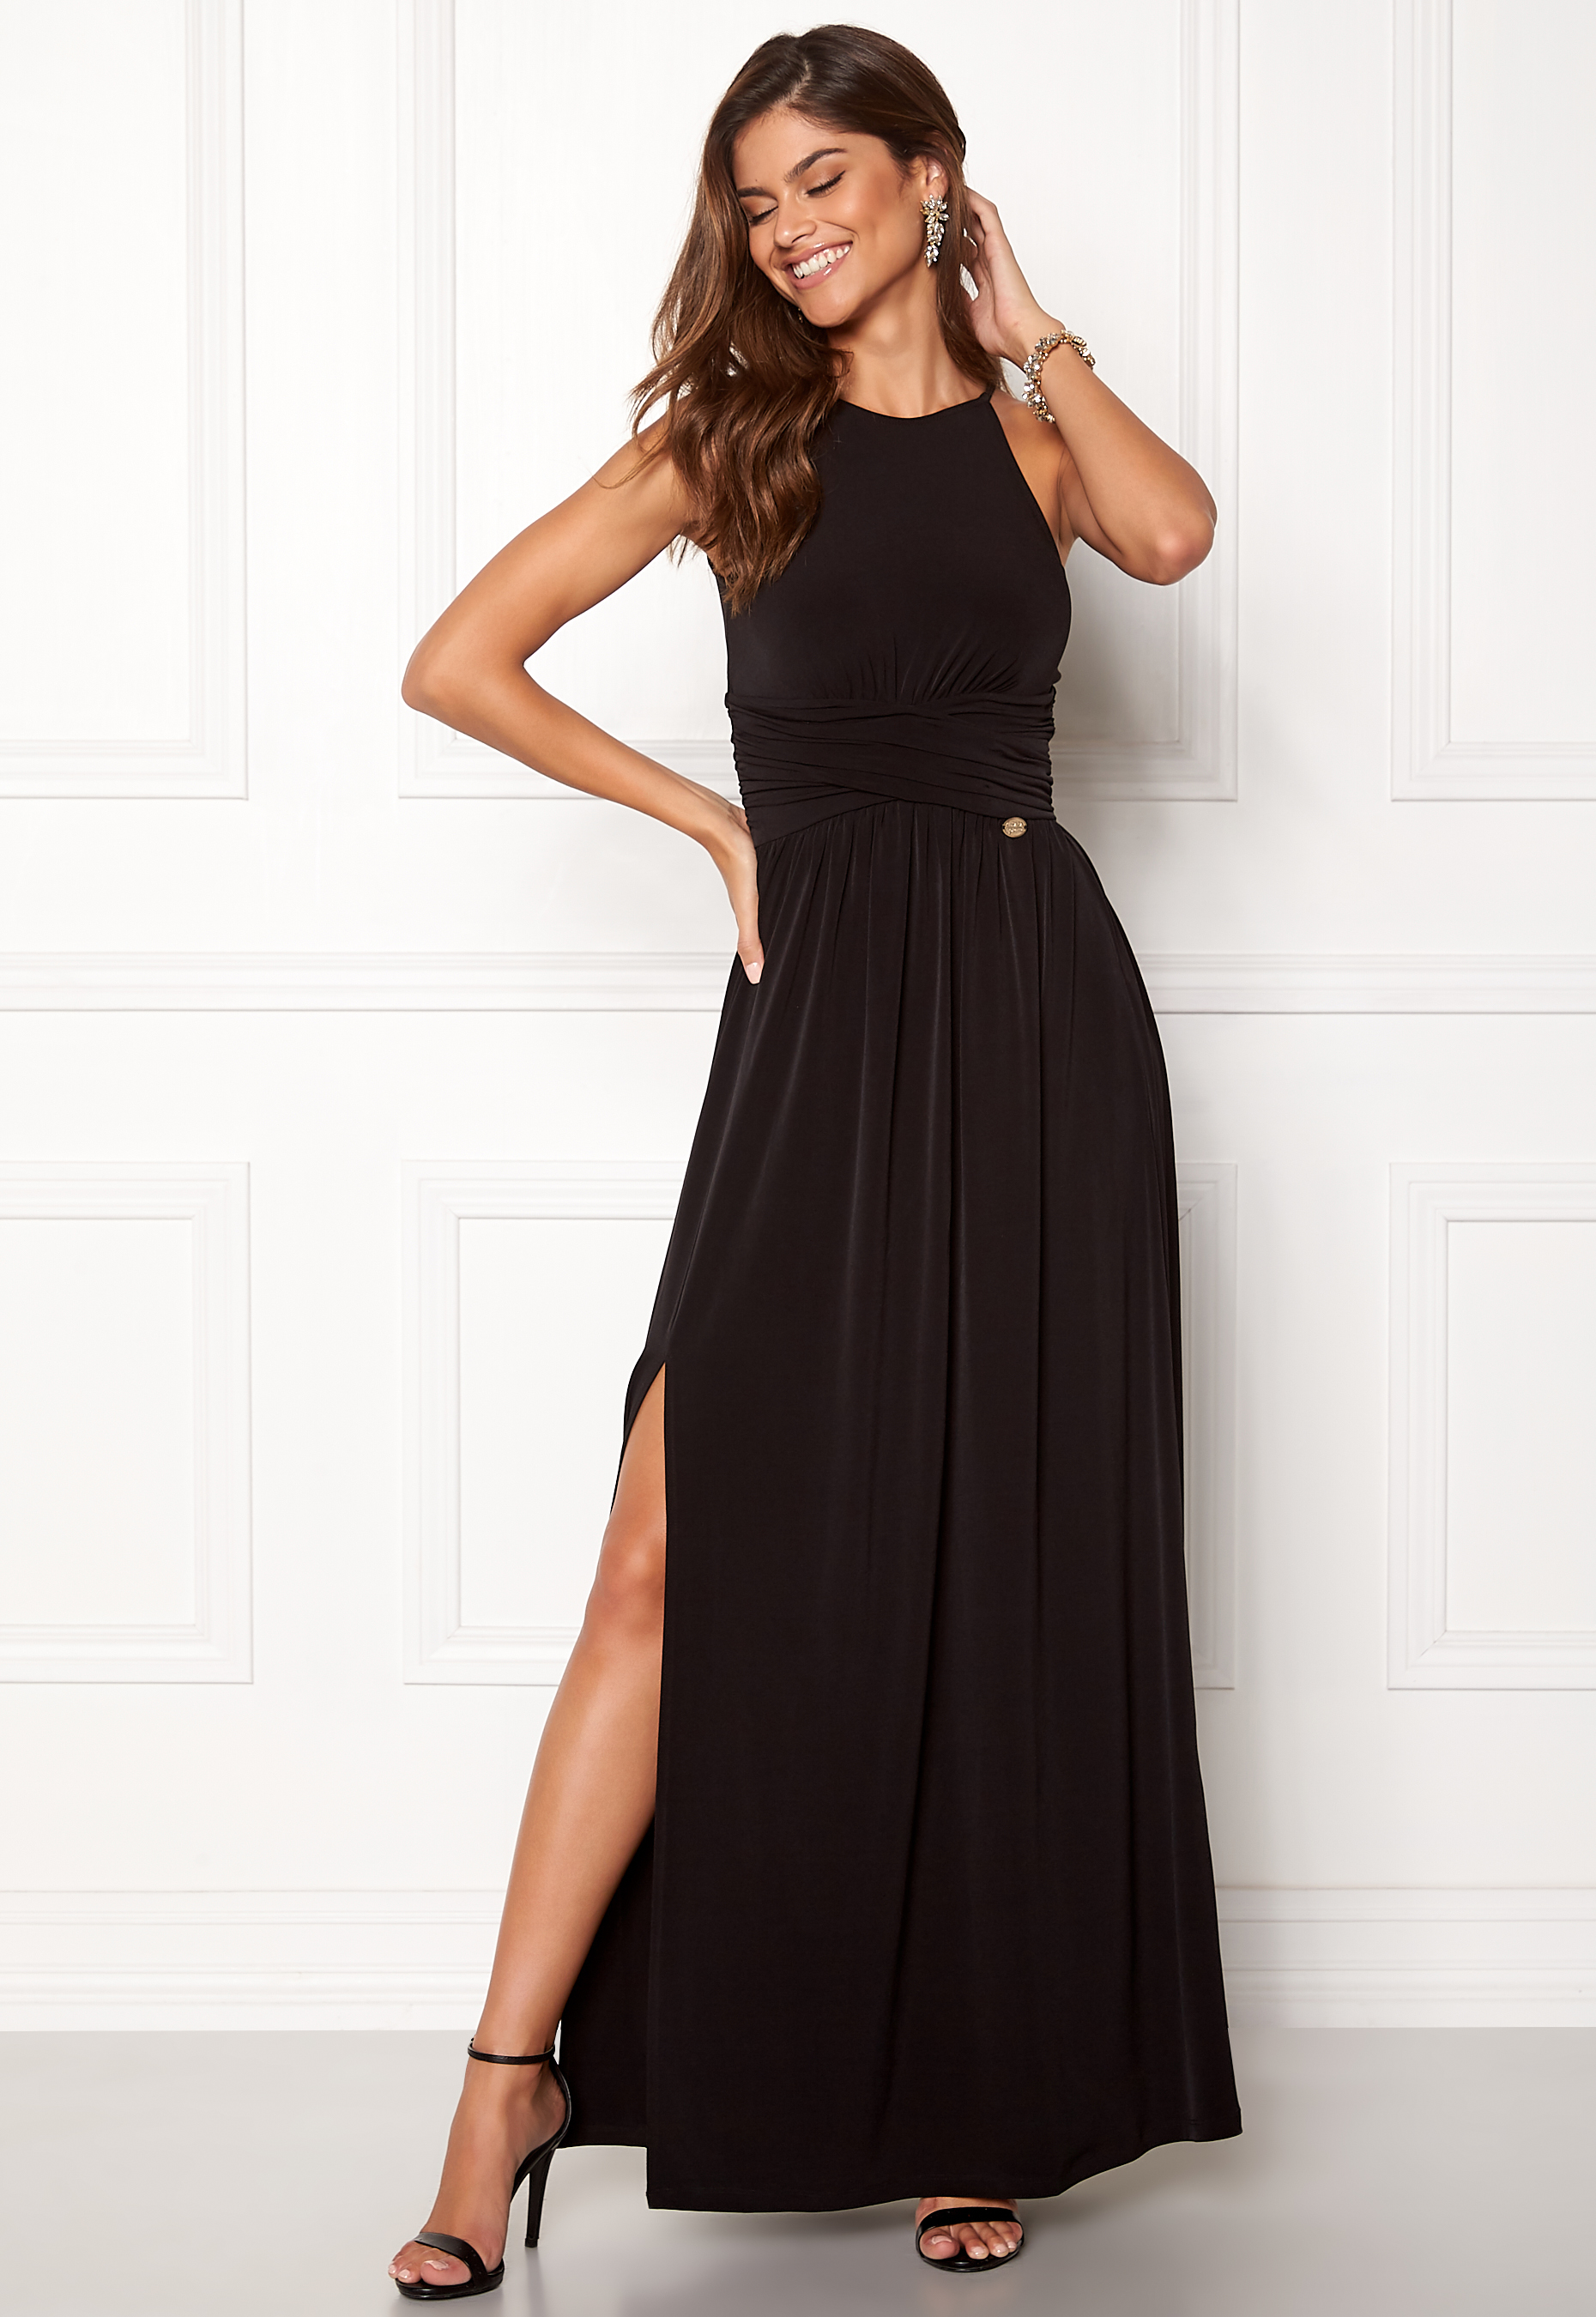 Chiara Forthi Erica Maxi Dress Black - Bubbleroom 00f123b81f